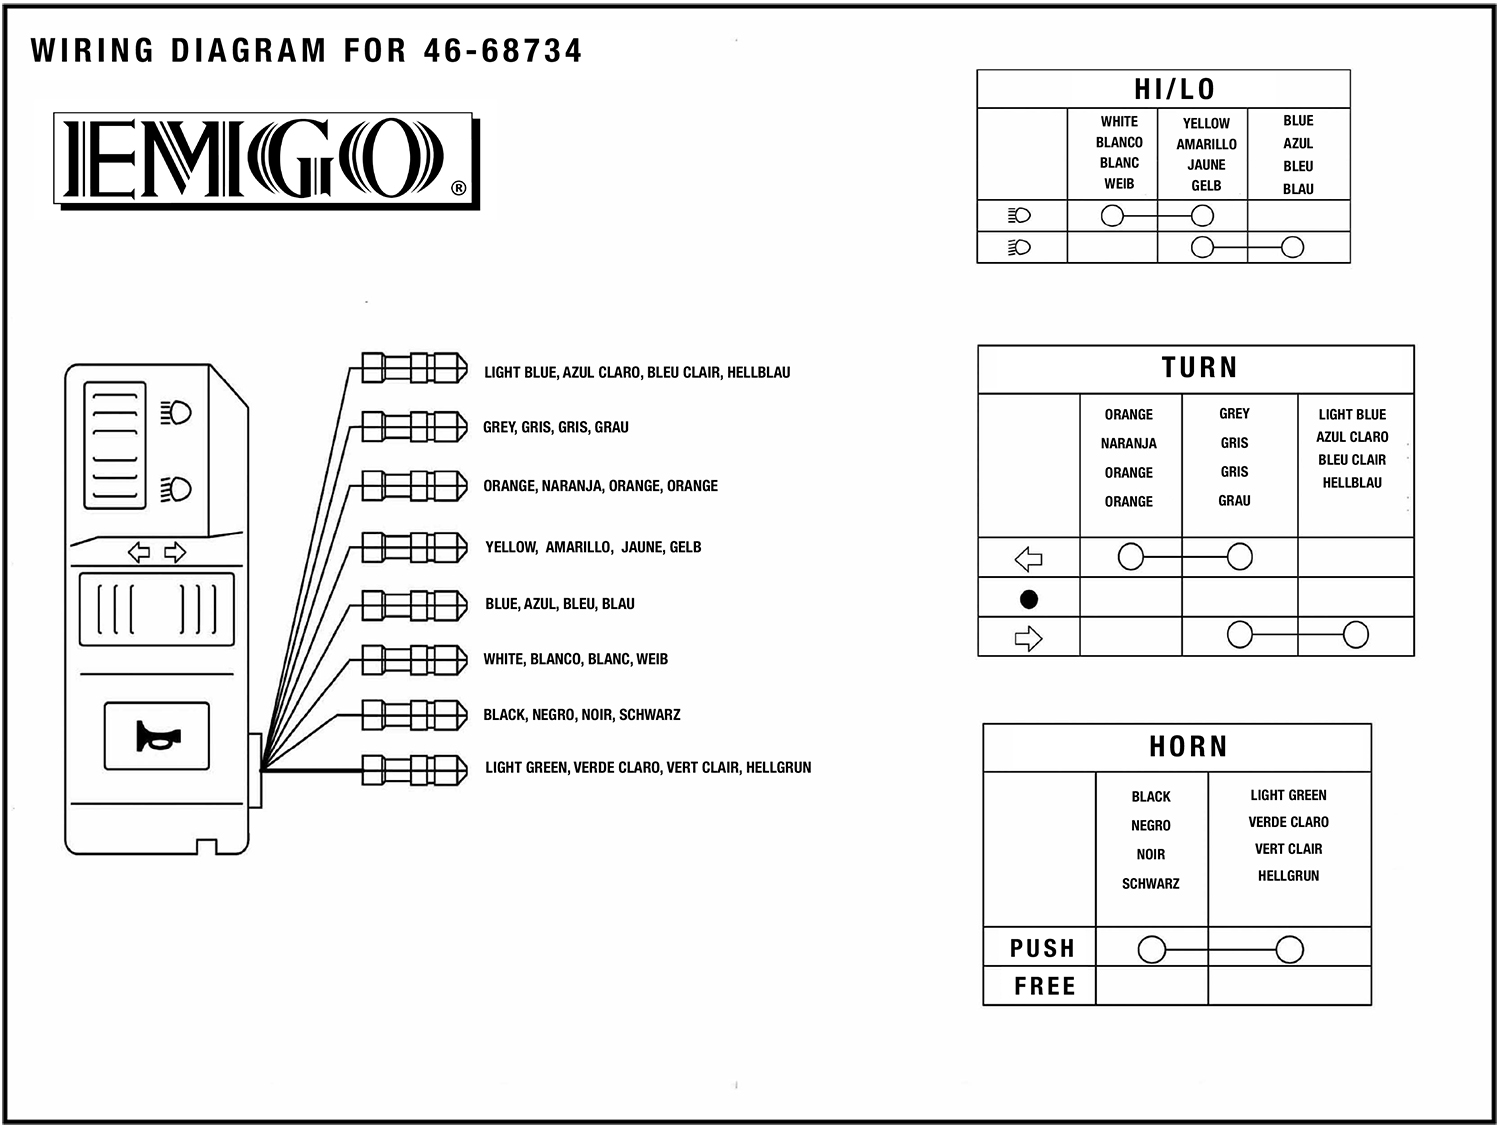 46 68734 wiring diagram left emgo schematic pin out handlebar multi switch motorcycle?t=1490389479 emgo universal handlebar multi switch left 46 68734 wiring Kawasaki ATV Wiring Diagram at gsmportal.co